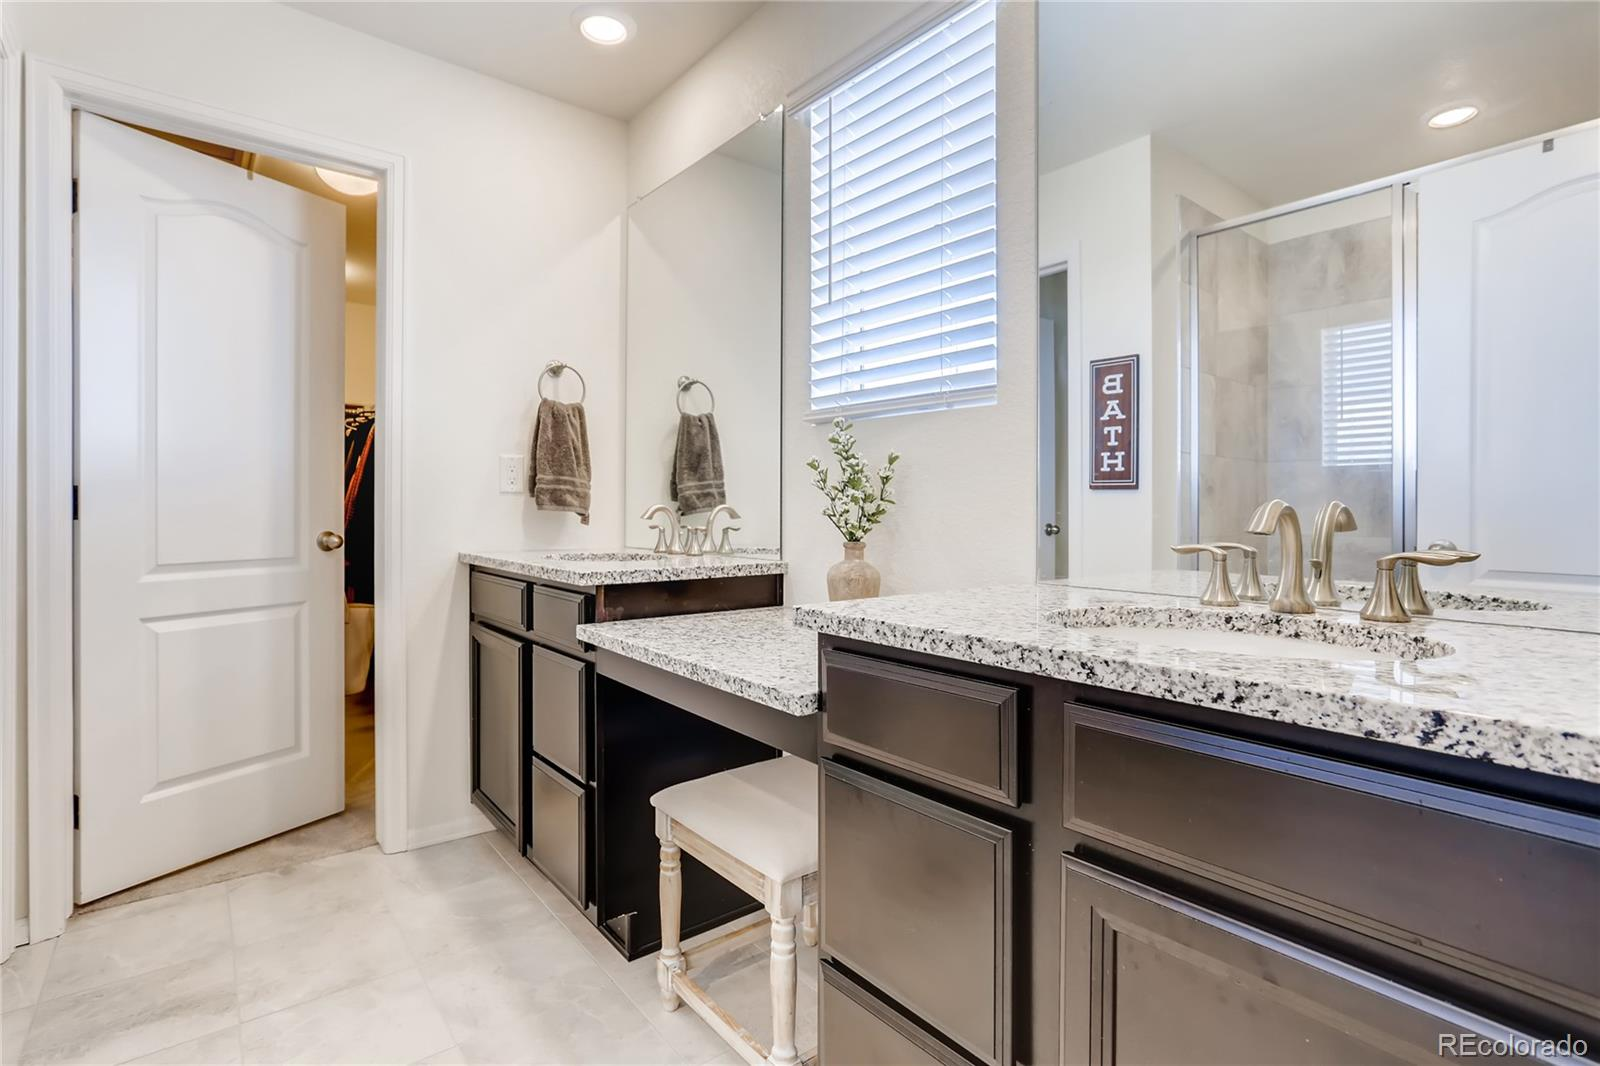 MLS# 2145354 - 18 - 26325 E Canal Place, Aurora, CO 80018